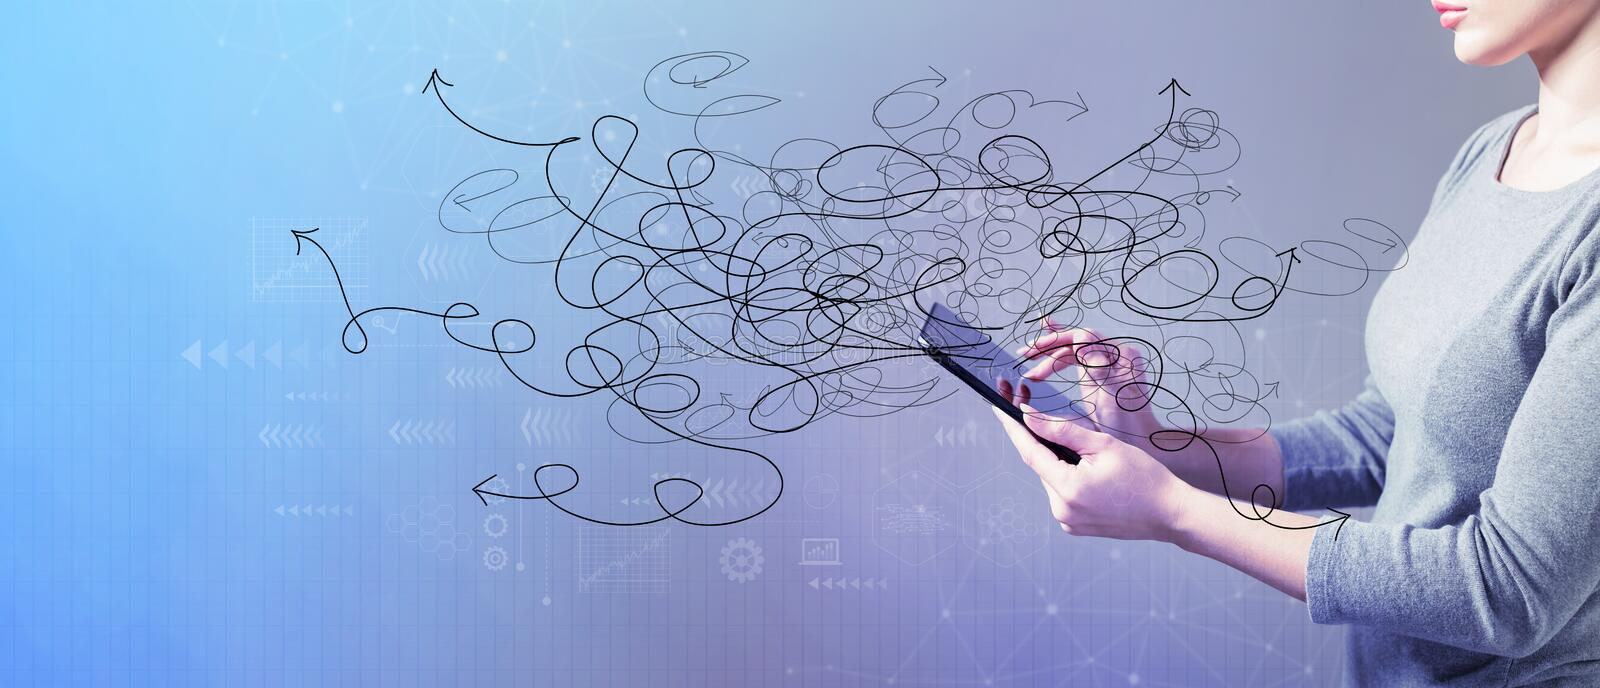 Solving a problem concept with woman using a tablet stock photo